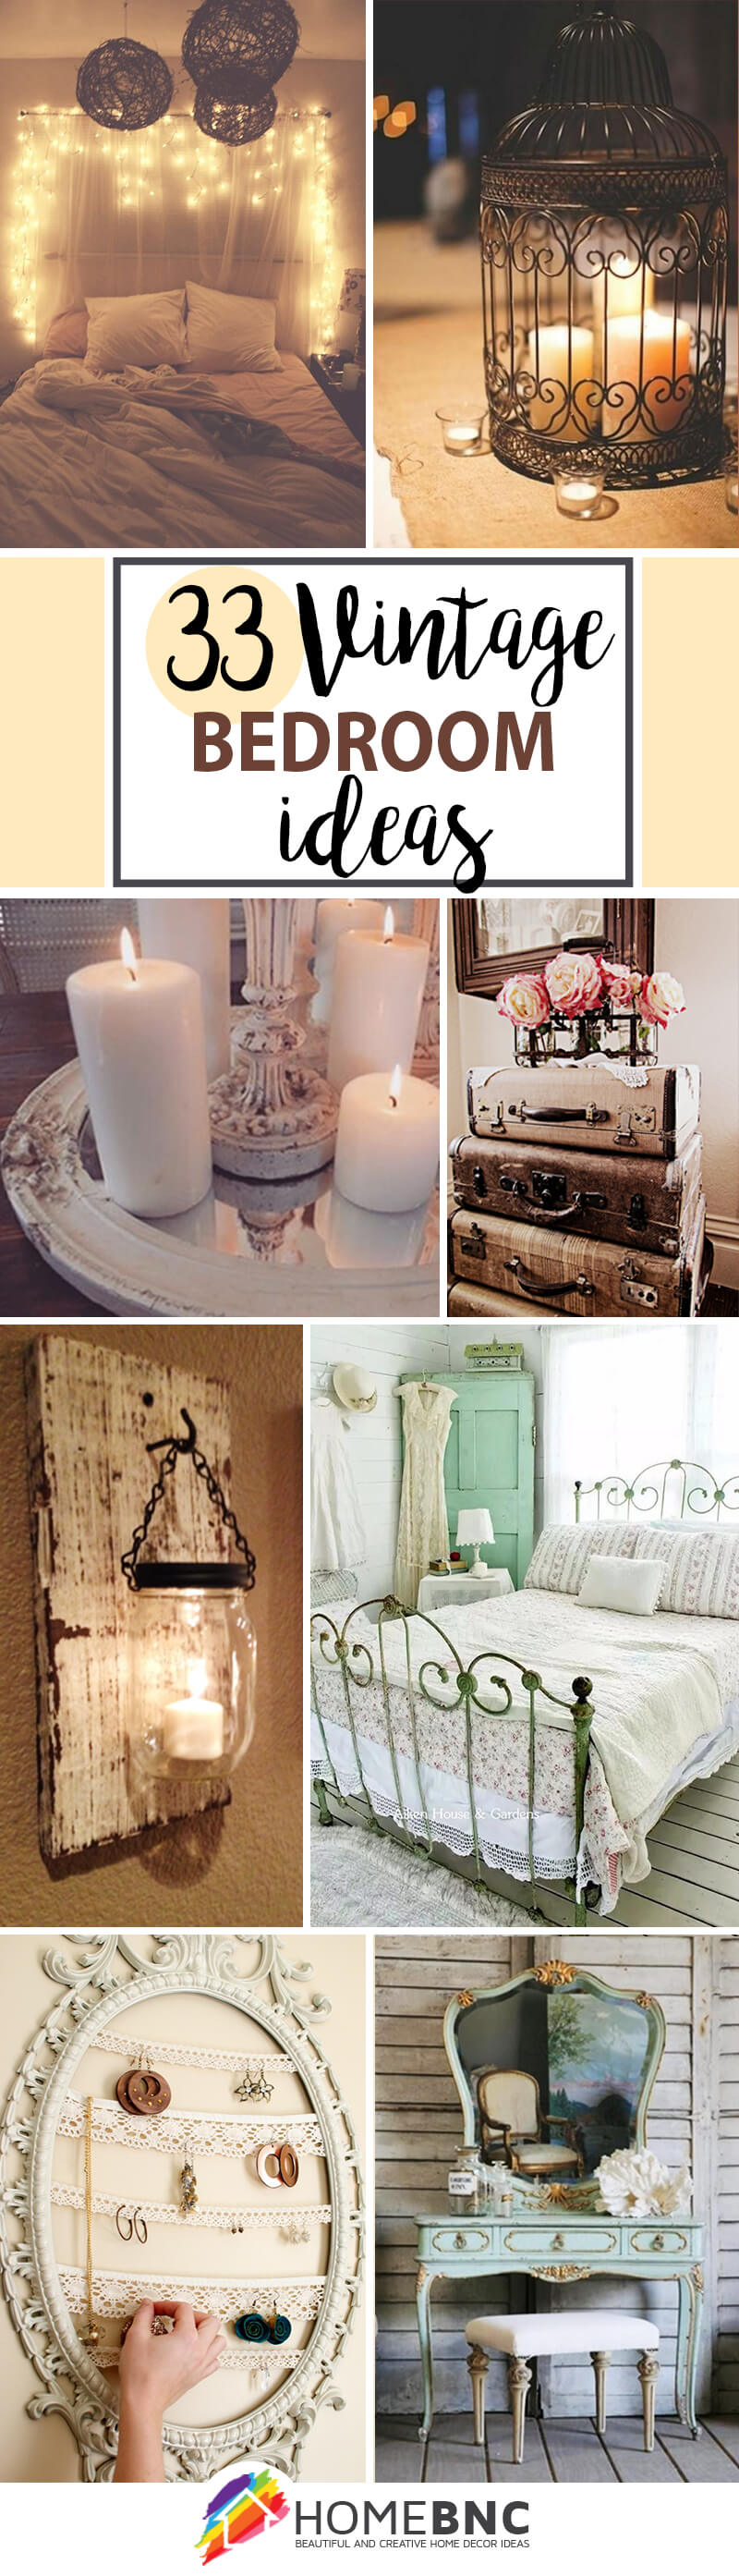 33 Best Vintage Bedroom Decor Ideas And Designs For 2020